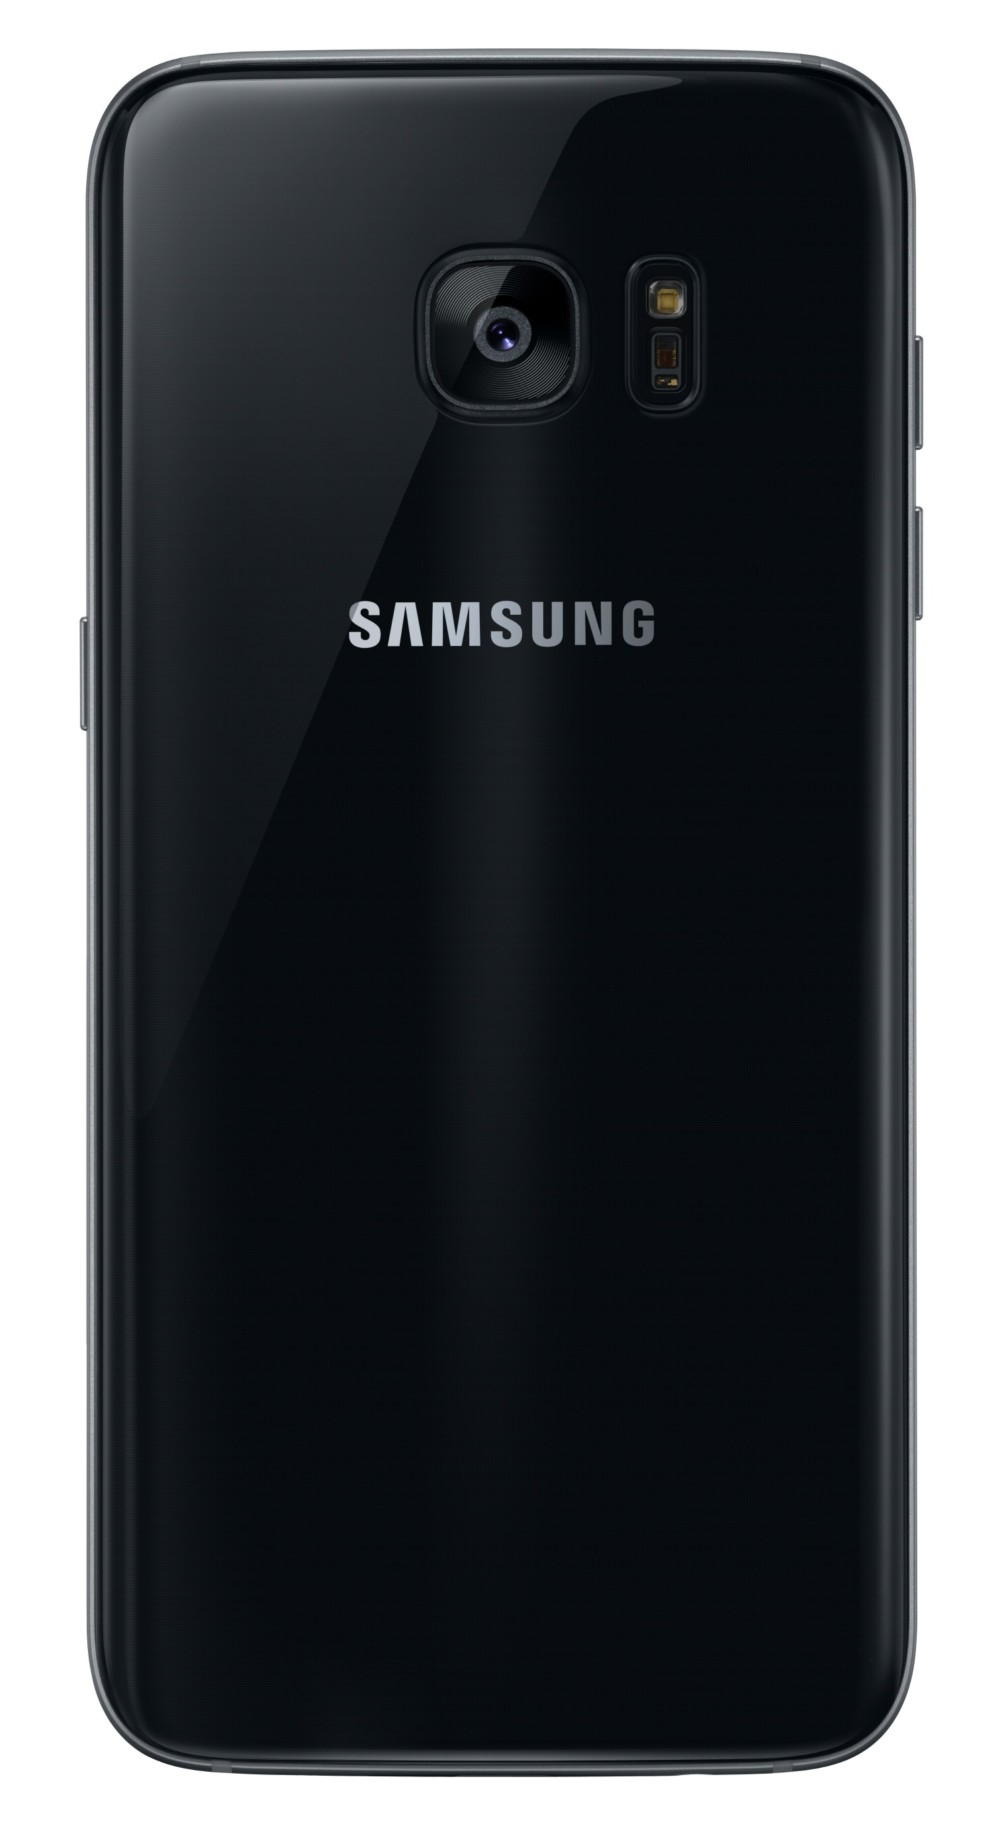 samsung-galaxy-s7-and-s7-edge-unveiled-with-refined-design-performance-boost-500729-8